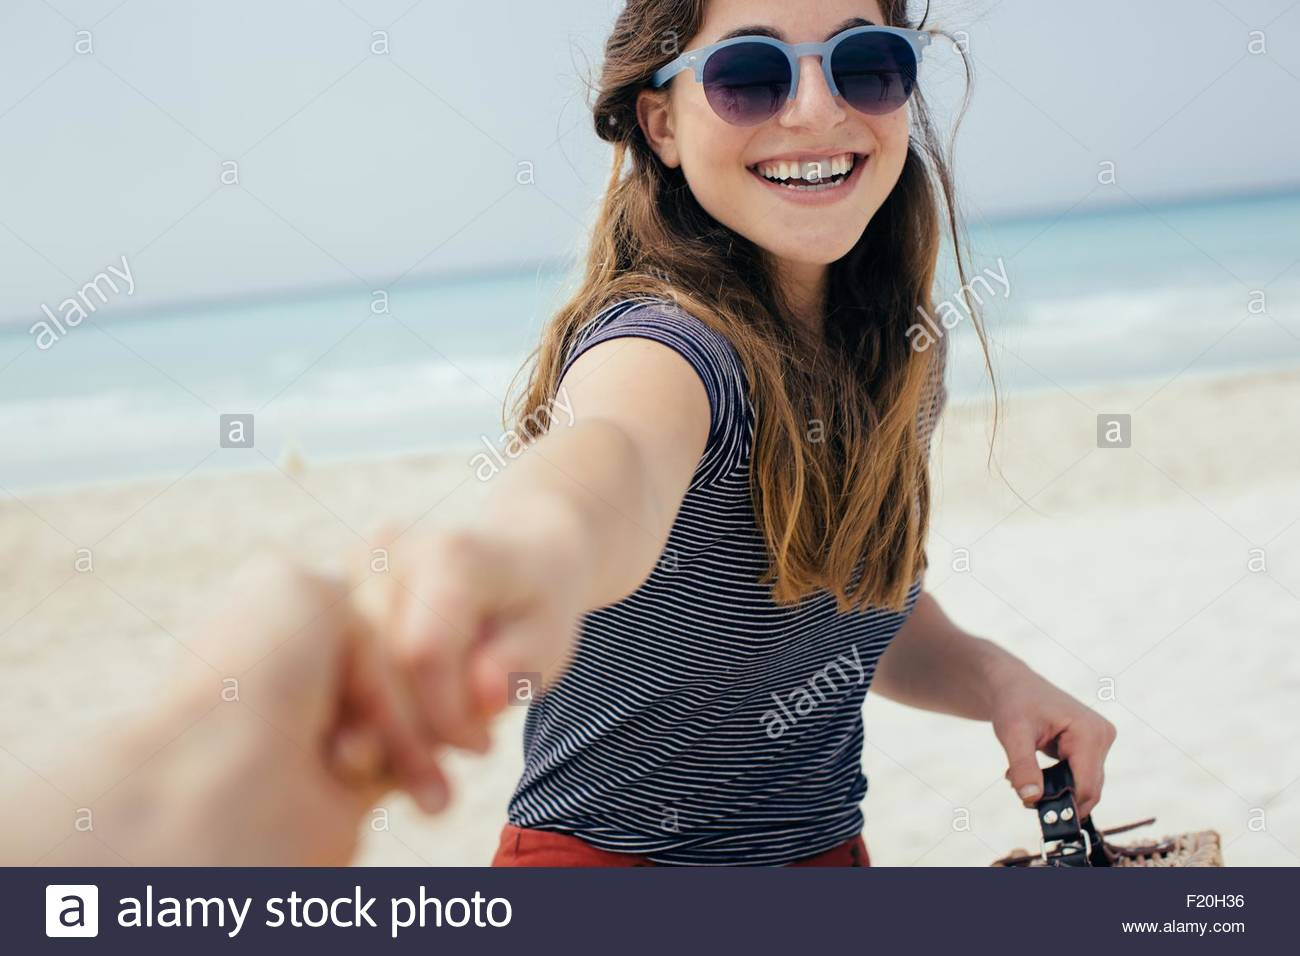 Portrait of young woman holding best friends hand on beach - Stock Image